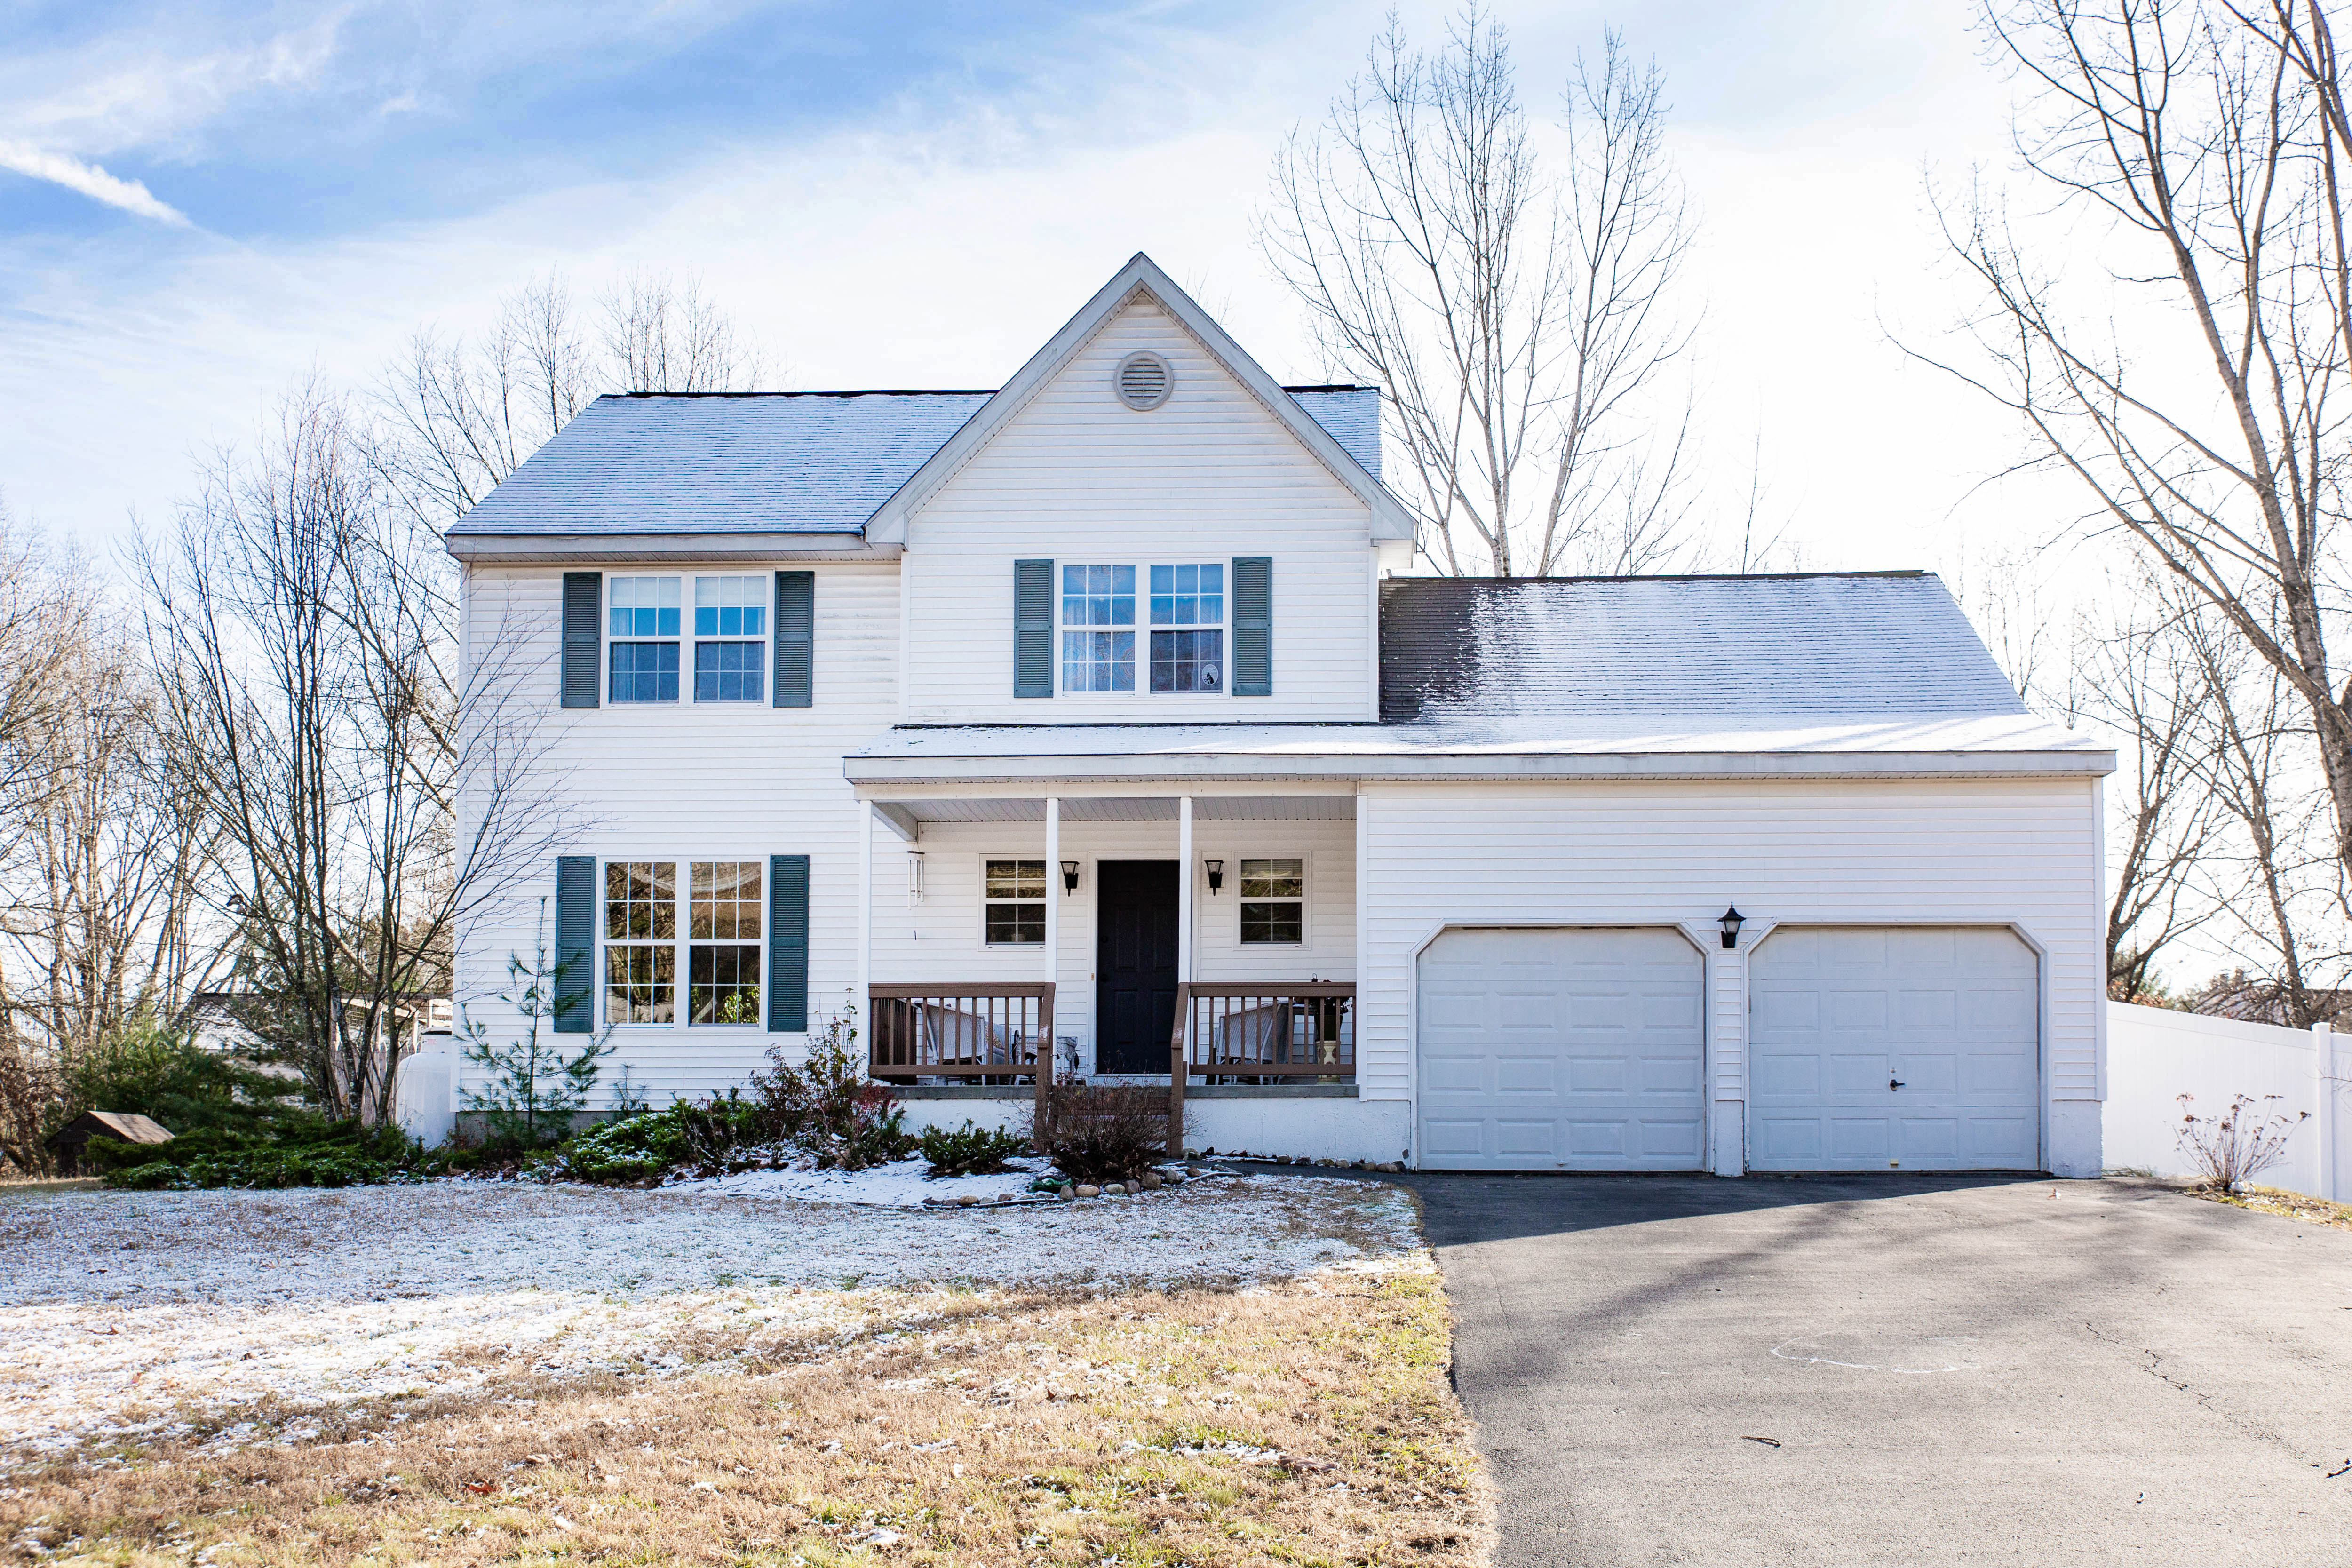 Single Family Home for sale in 9 Oxford Dr, Saratoga Springs, NY ,12866